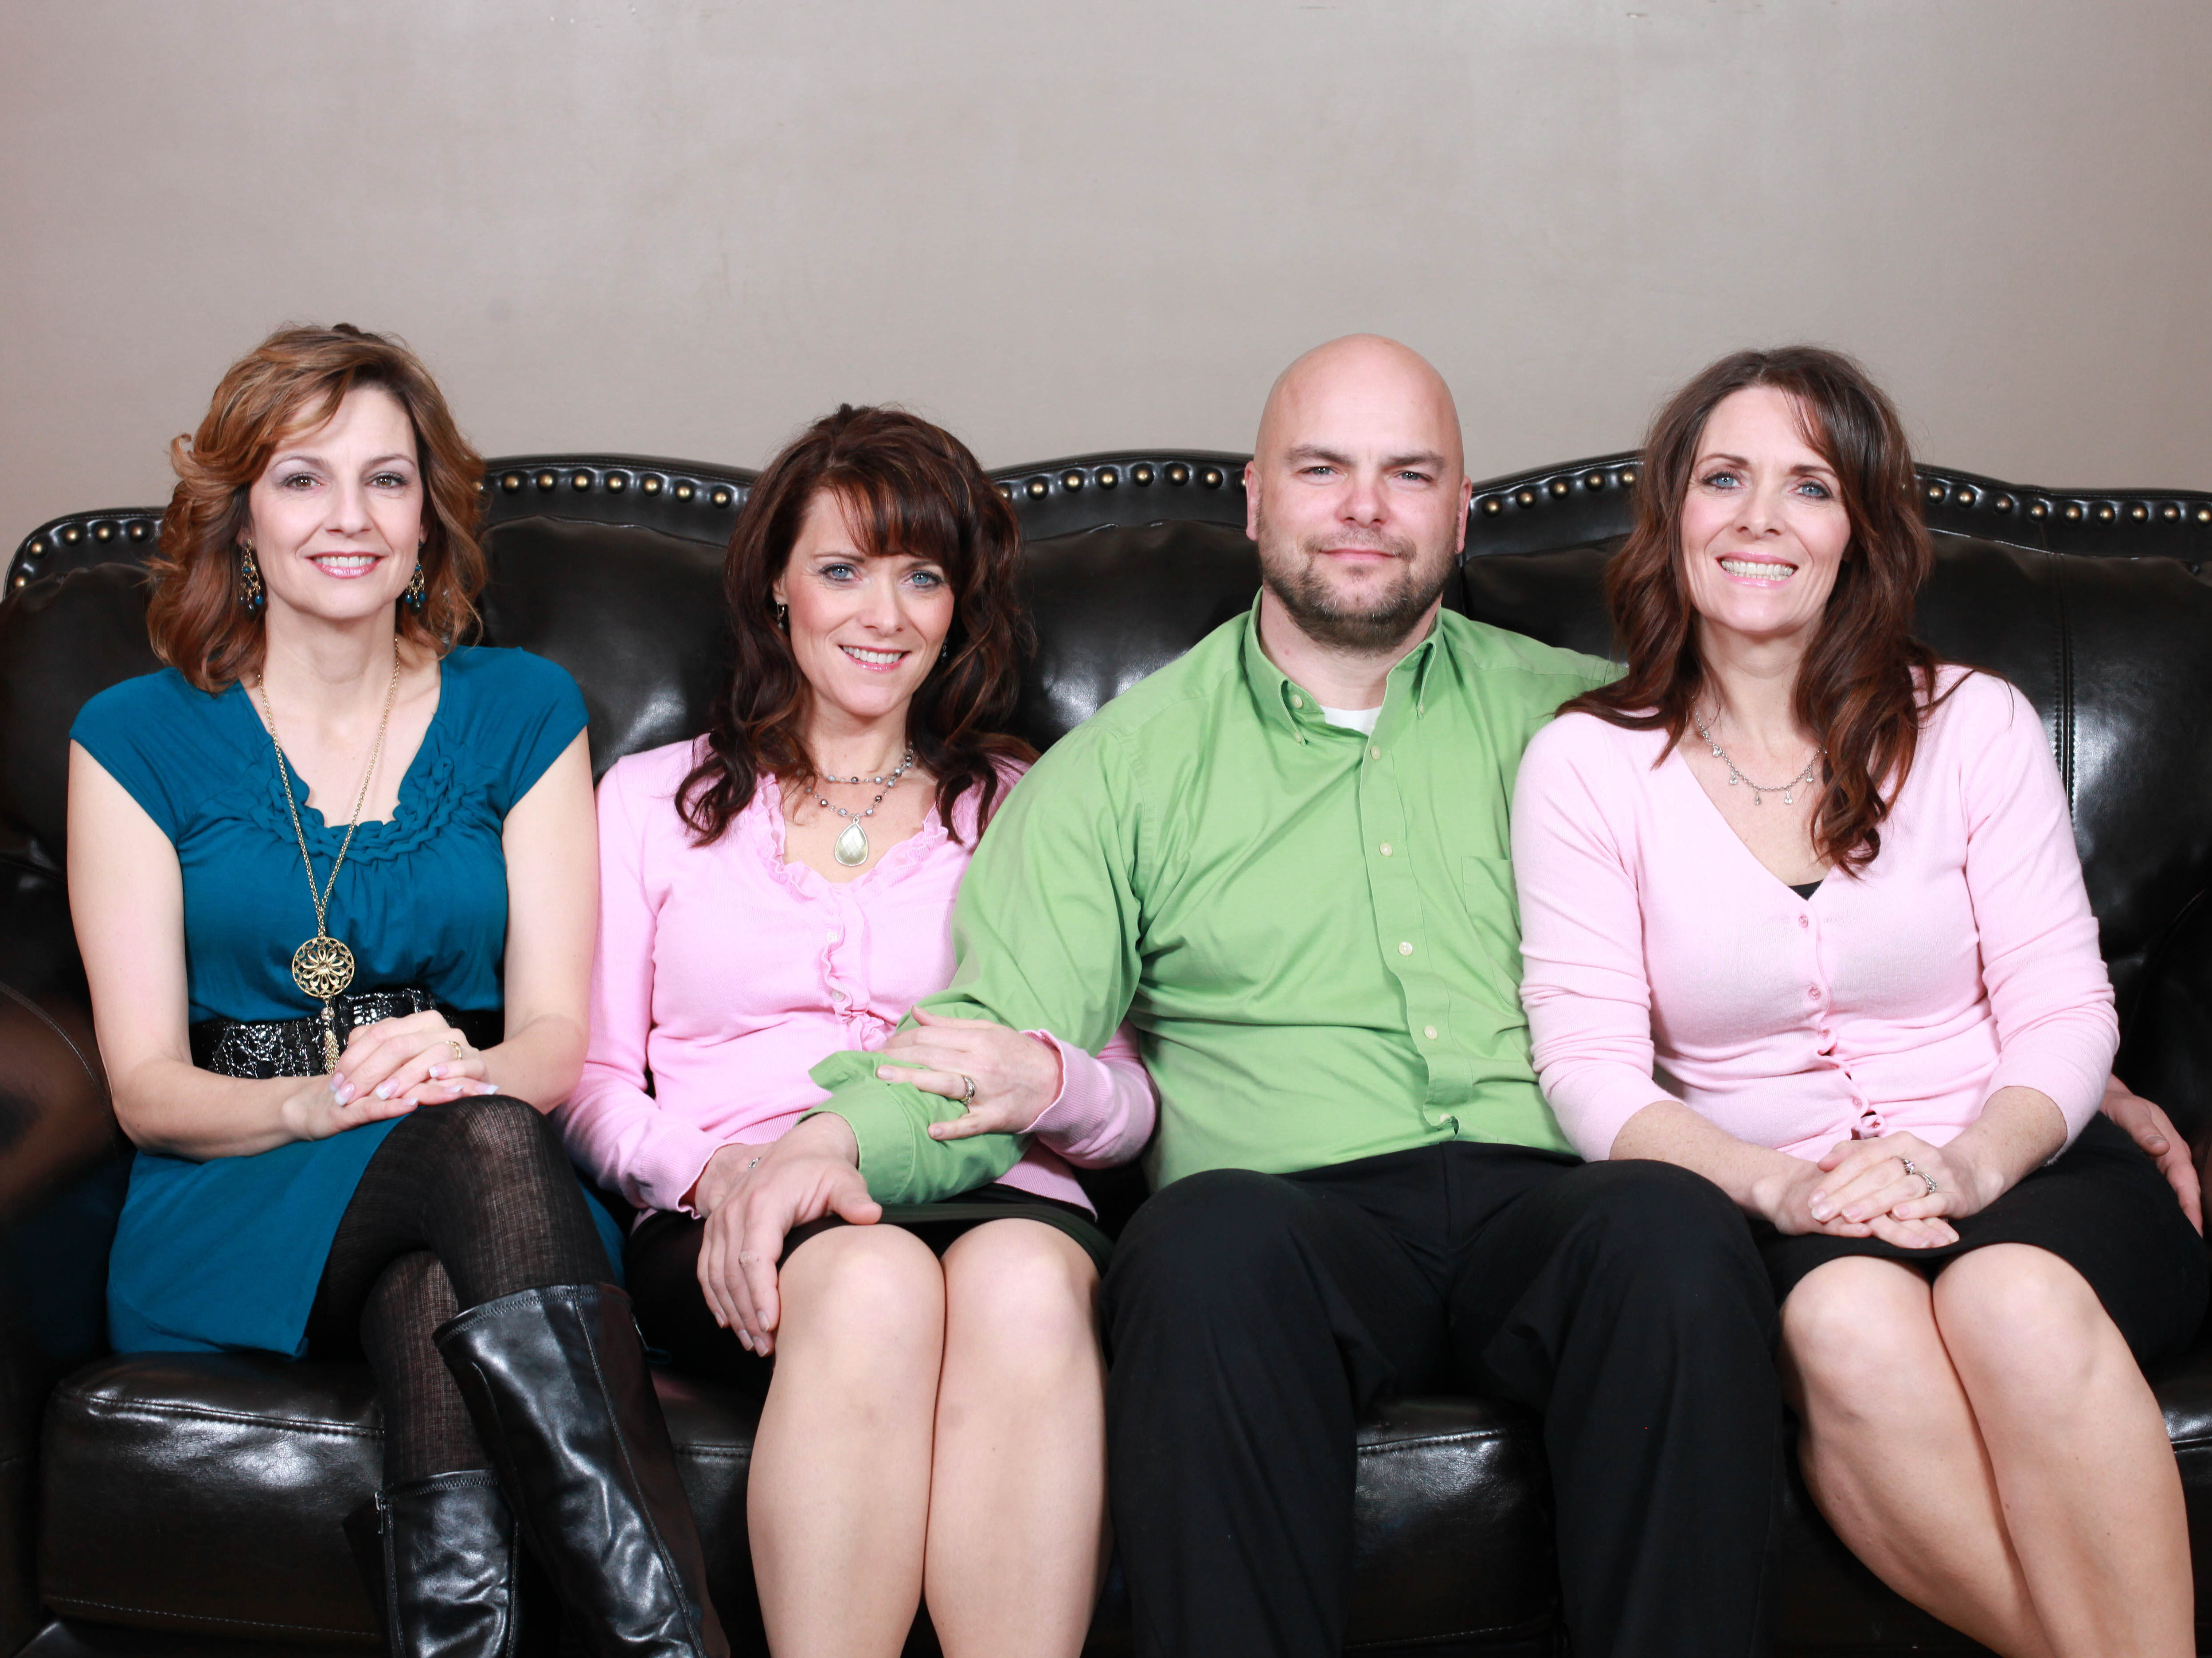 Judge Softens Utah's Anti-Polygamy Law To Mixed Reactions